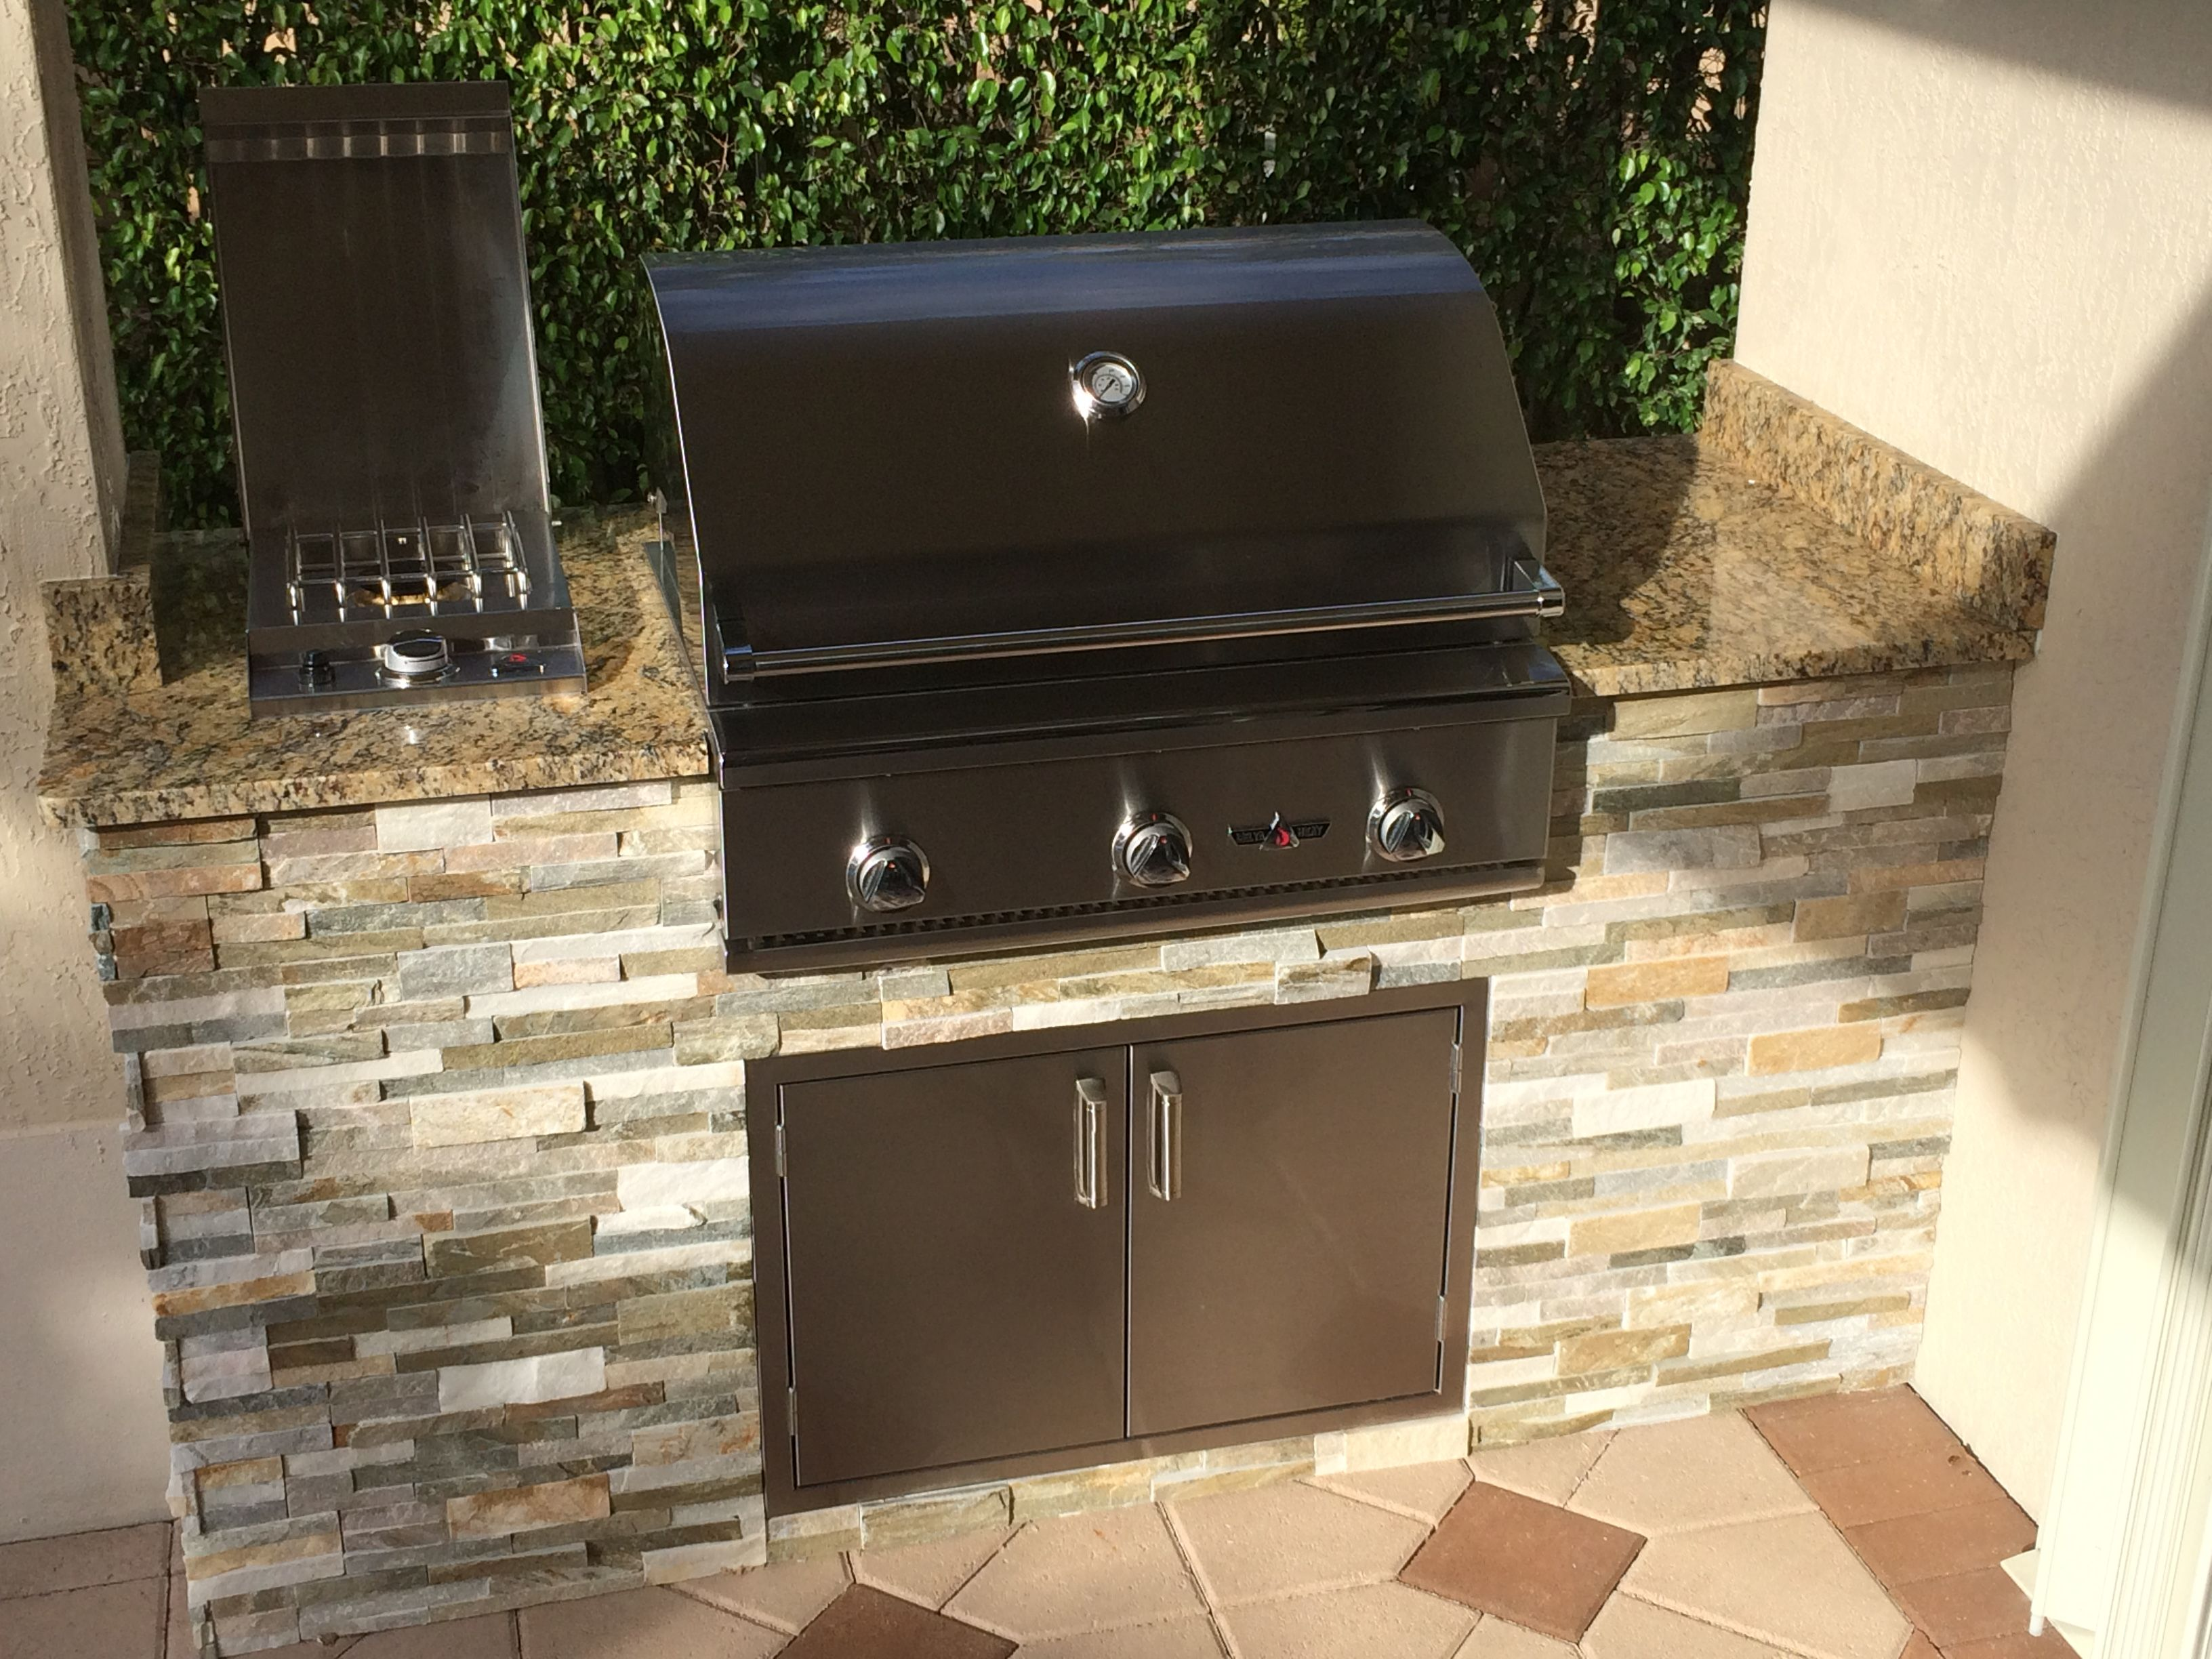 Grill Island To Accommodate A Small Space. Delta Heat Grill And Drop In Single Side Burner